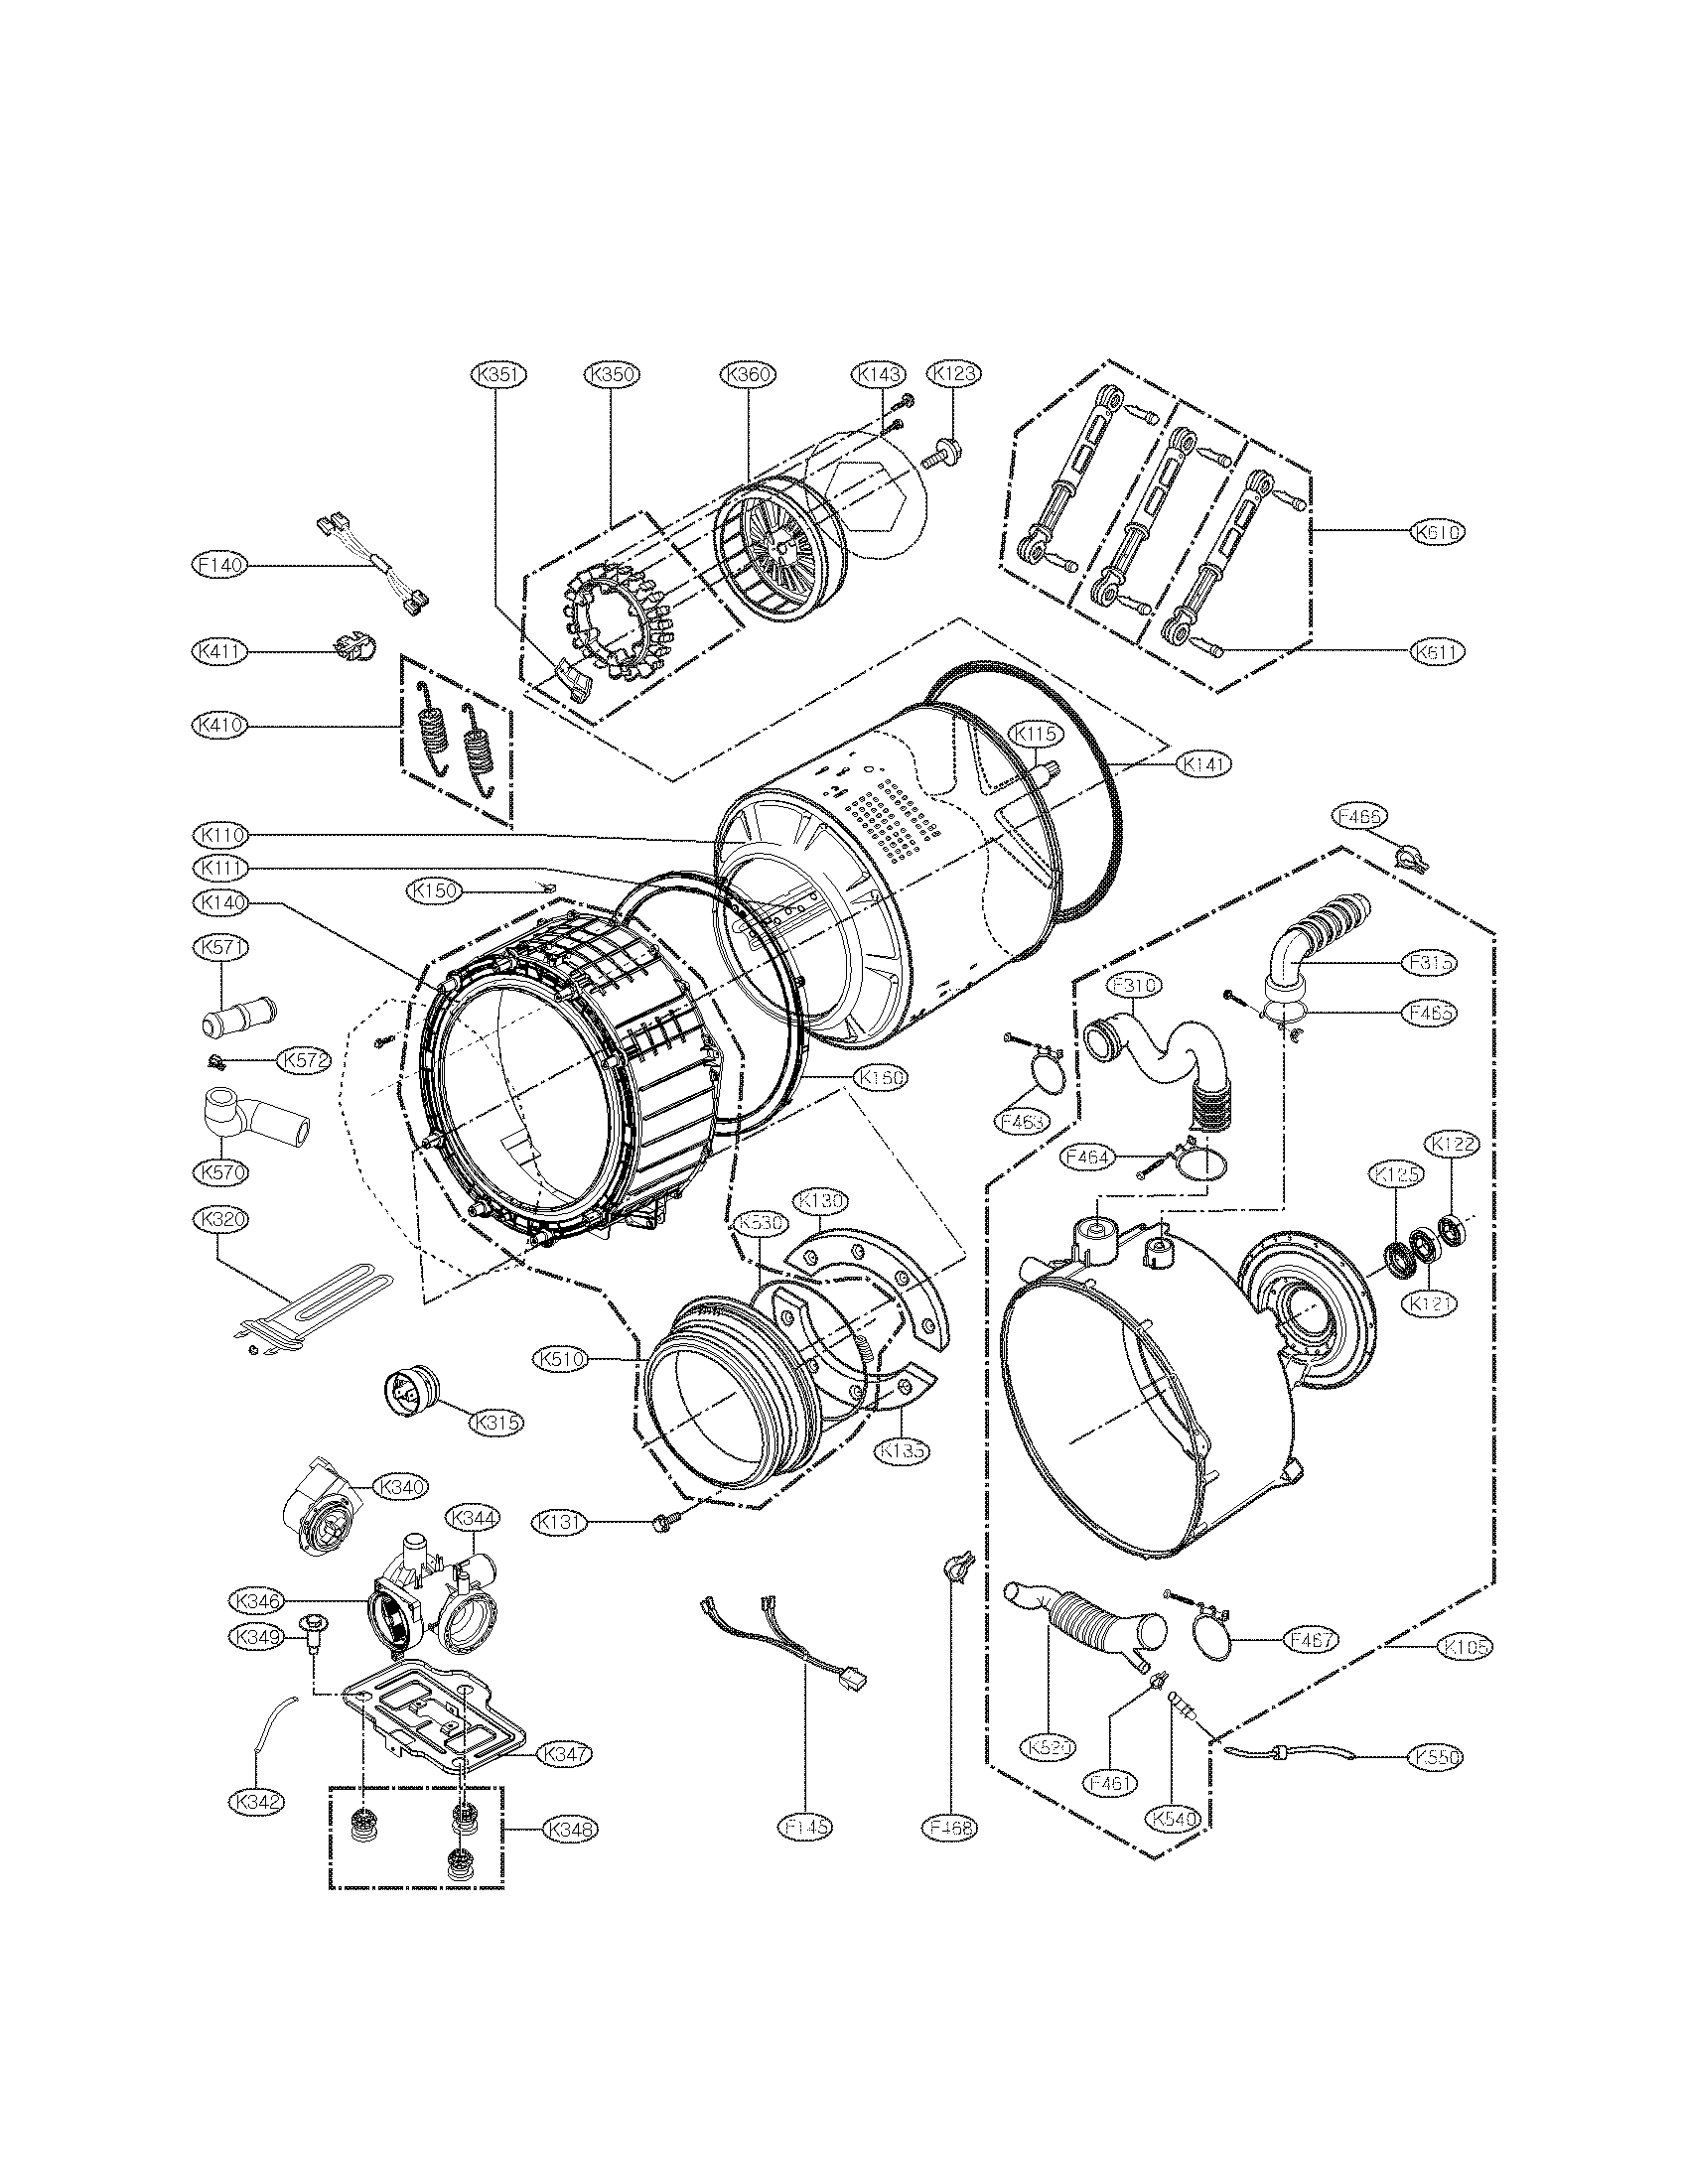 Lg Wm Hv Washer Drain Pump And Motor Assembly